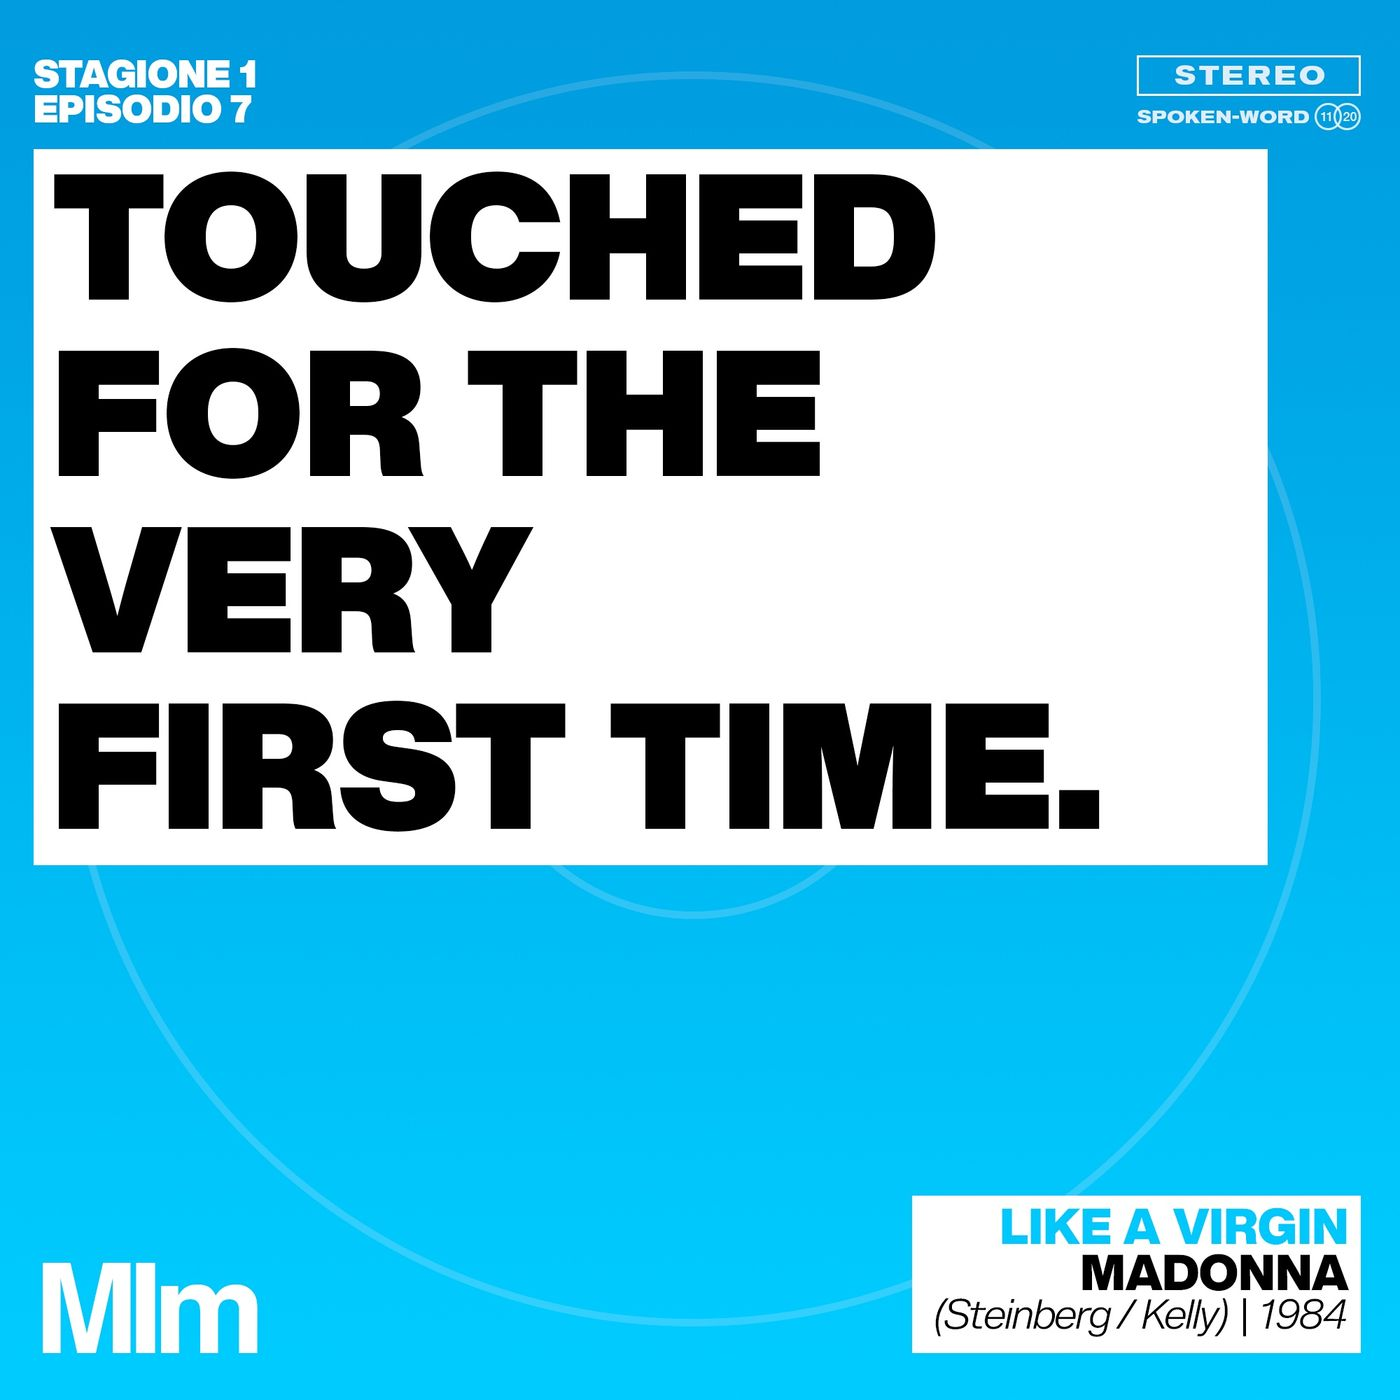 #7: Touched for the very first time (LIKE A VIRGIN - Madonna)